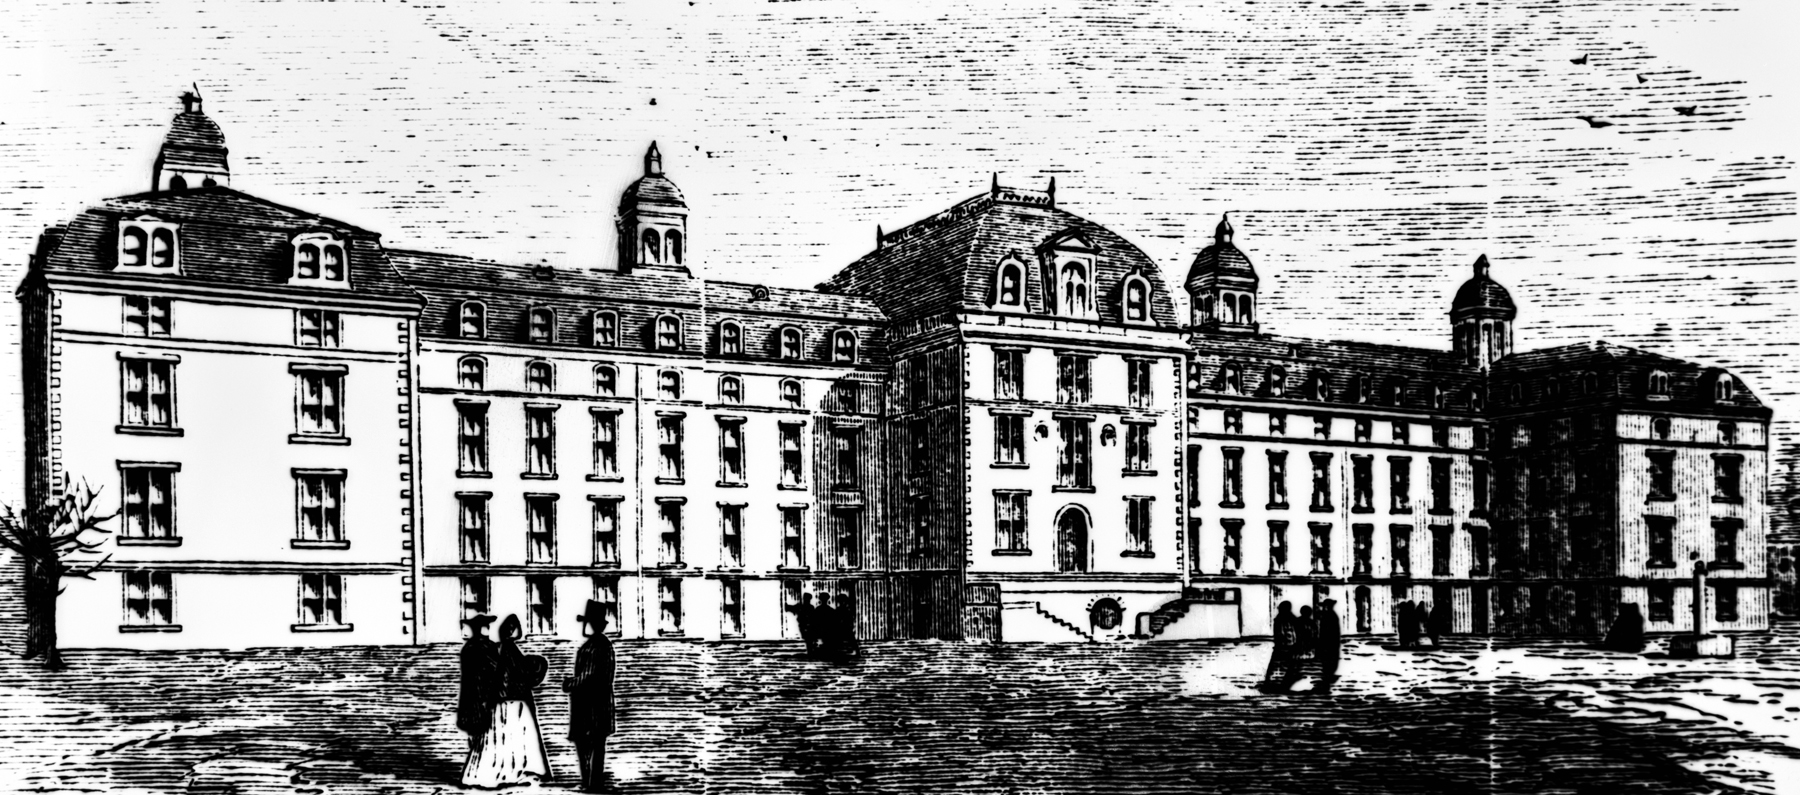 Architectural rendering of the City Hospital, Library of Congress